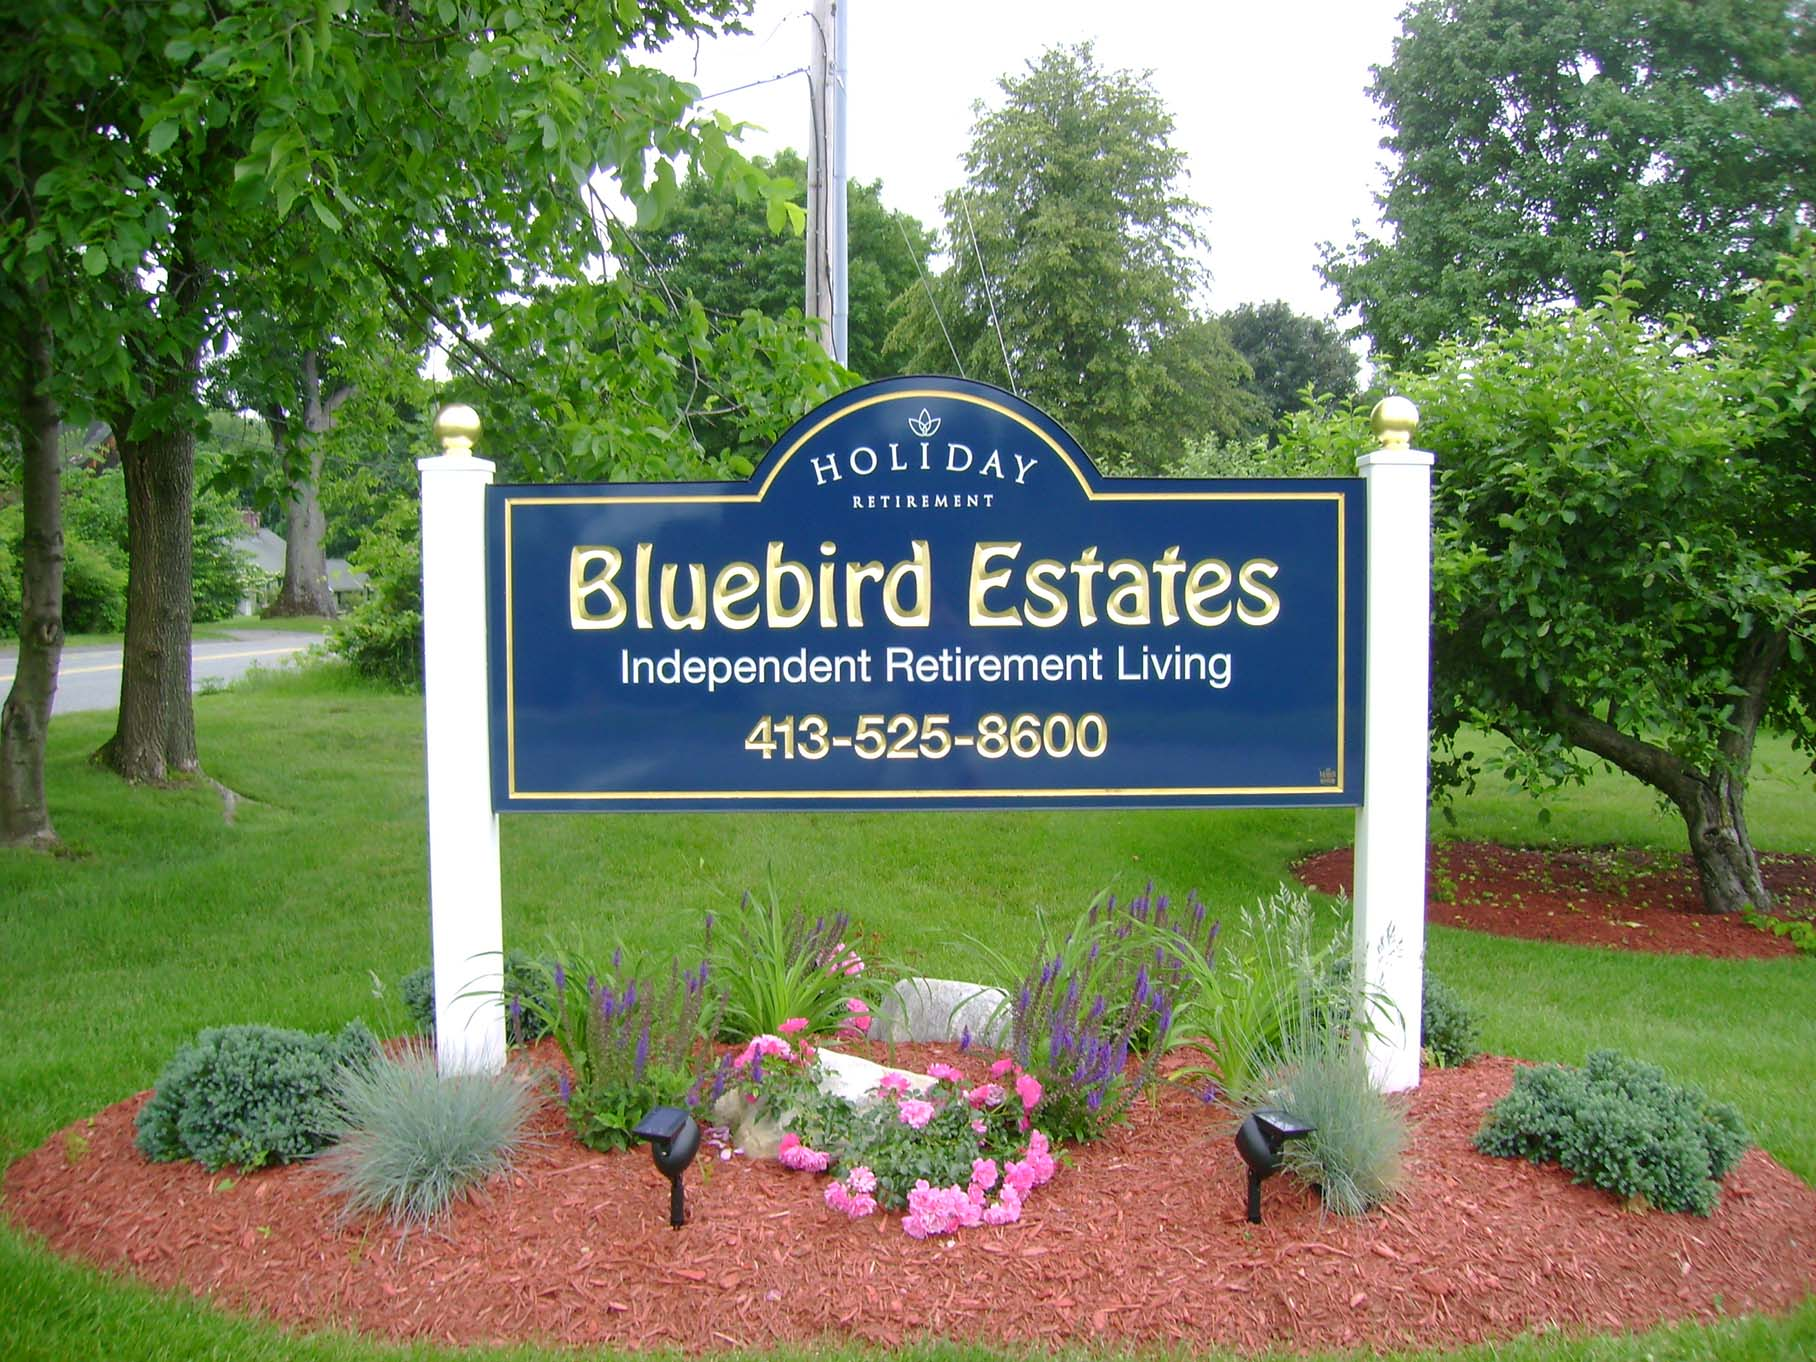 Bluebird estates